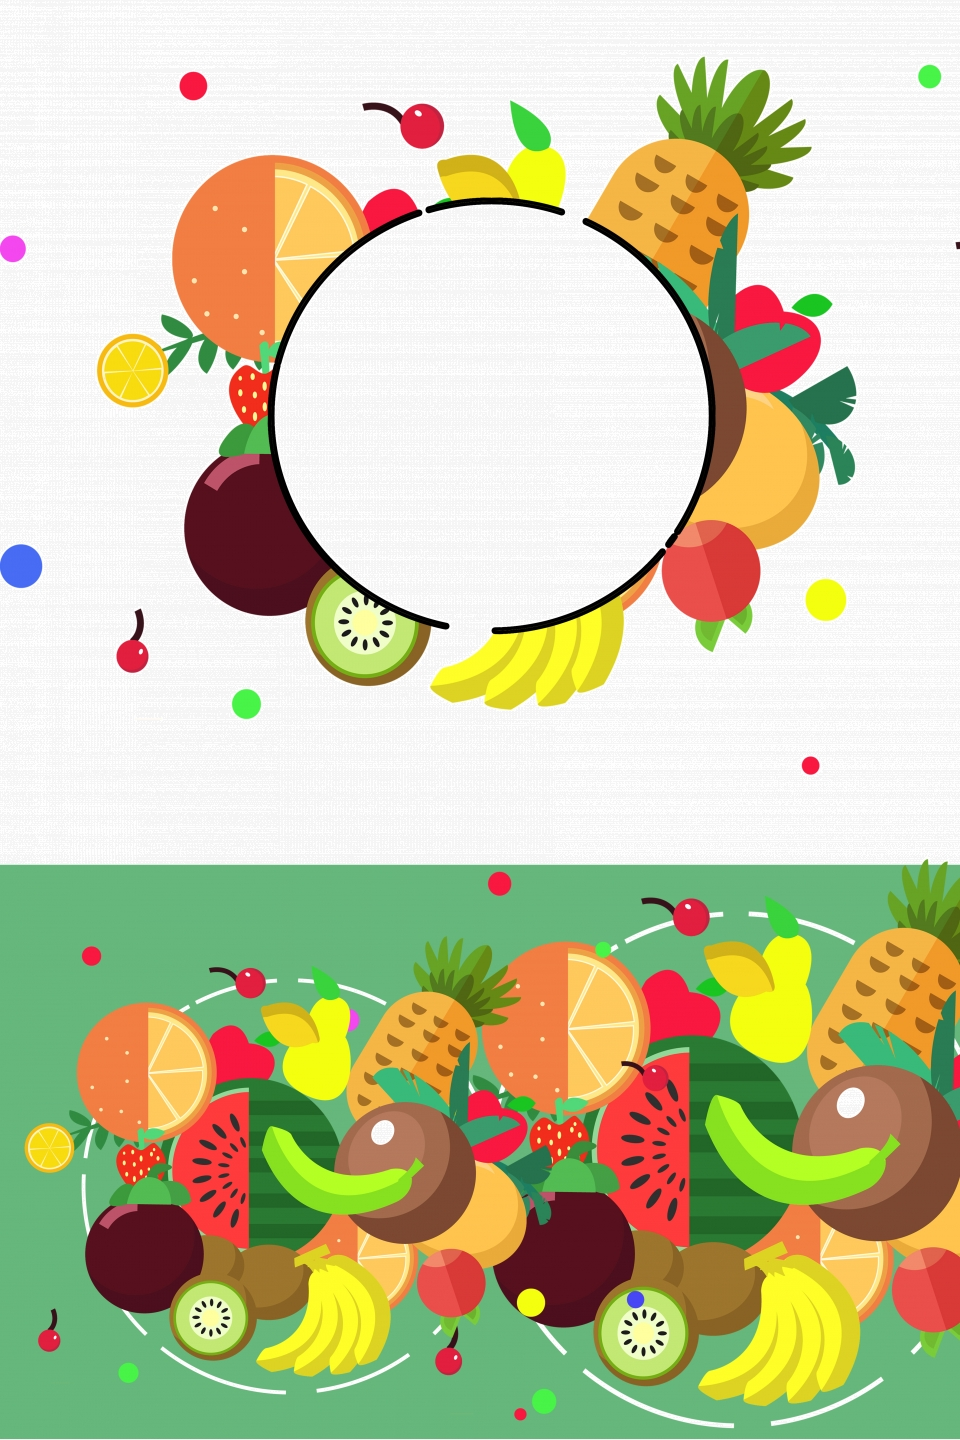 Food Safety Poster Background Material, Food Safety, Healthy Living